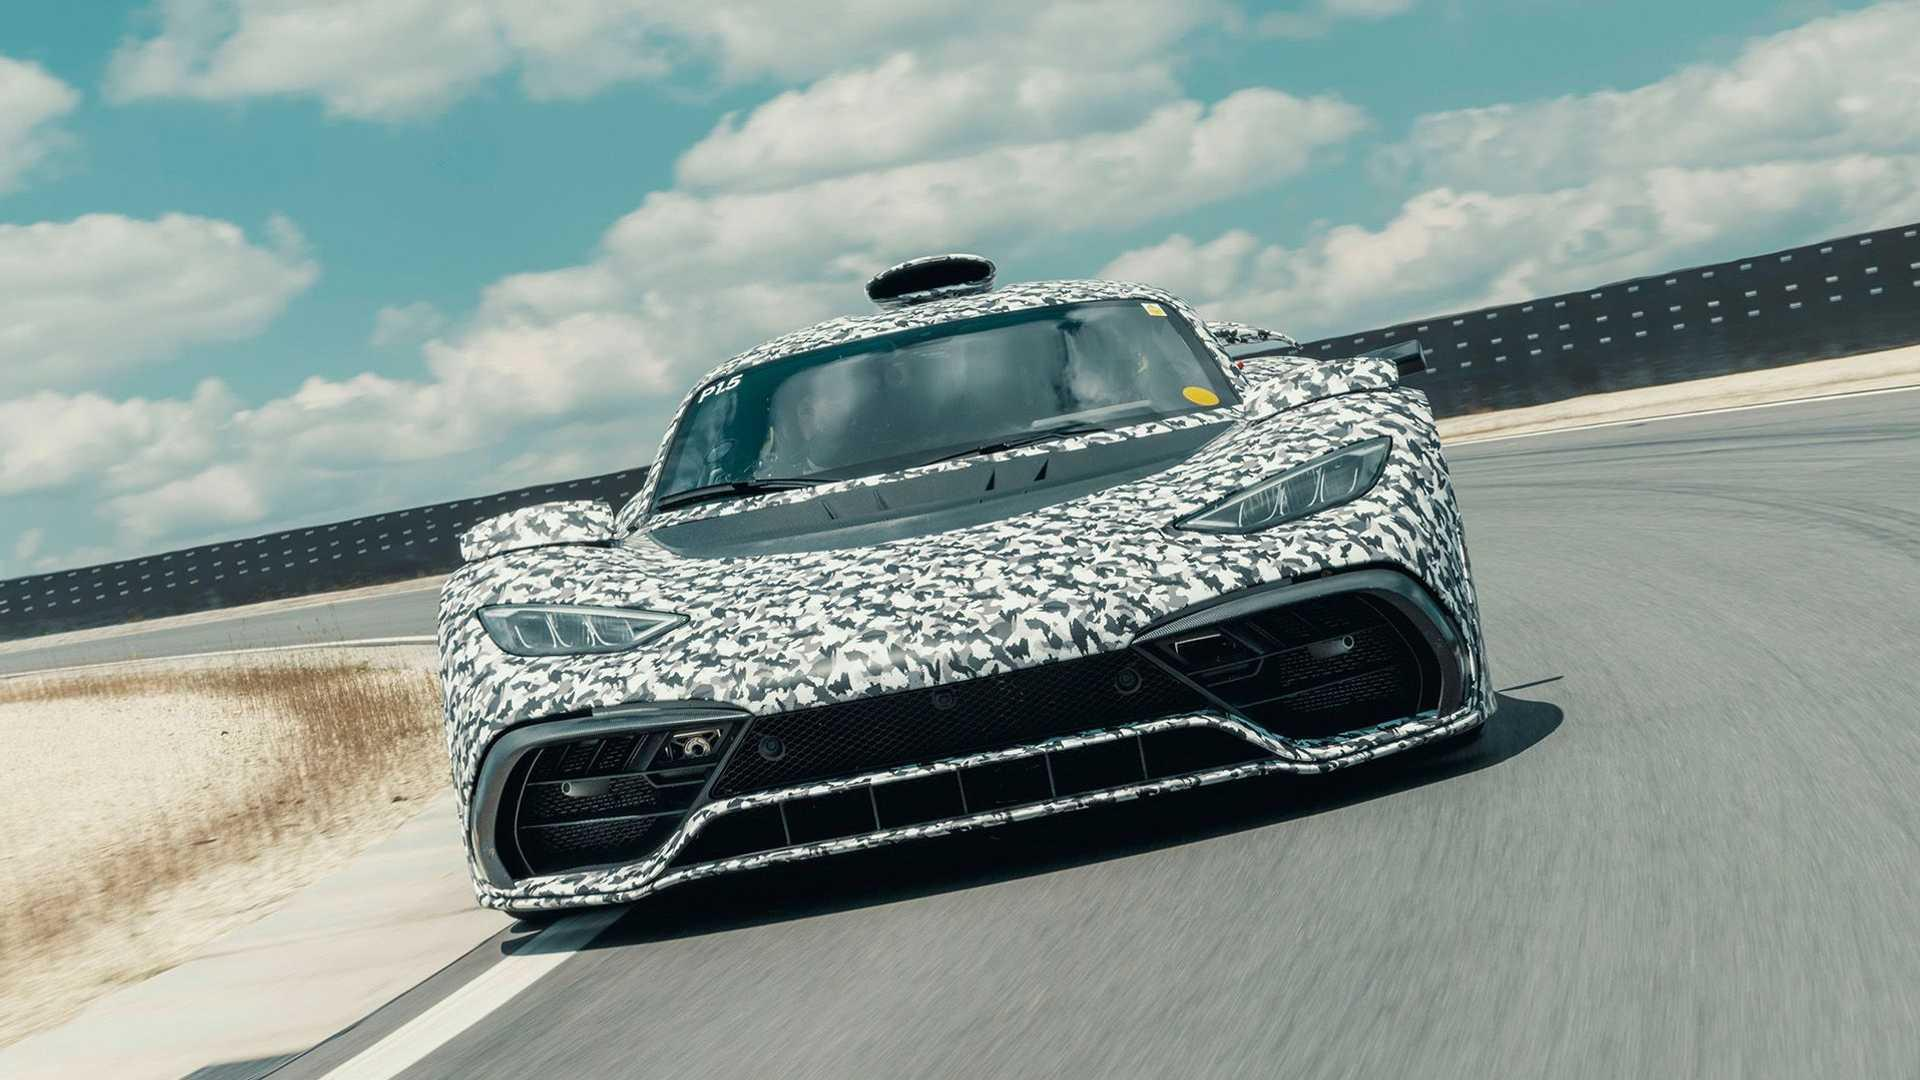 The launch of the hybrid-powered Mercedes-AMG One remains scheduled for 2021, but the tri-pointed star company decided to dispense with the mystery surrounding its specs.